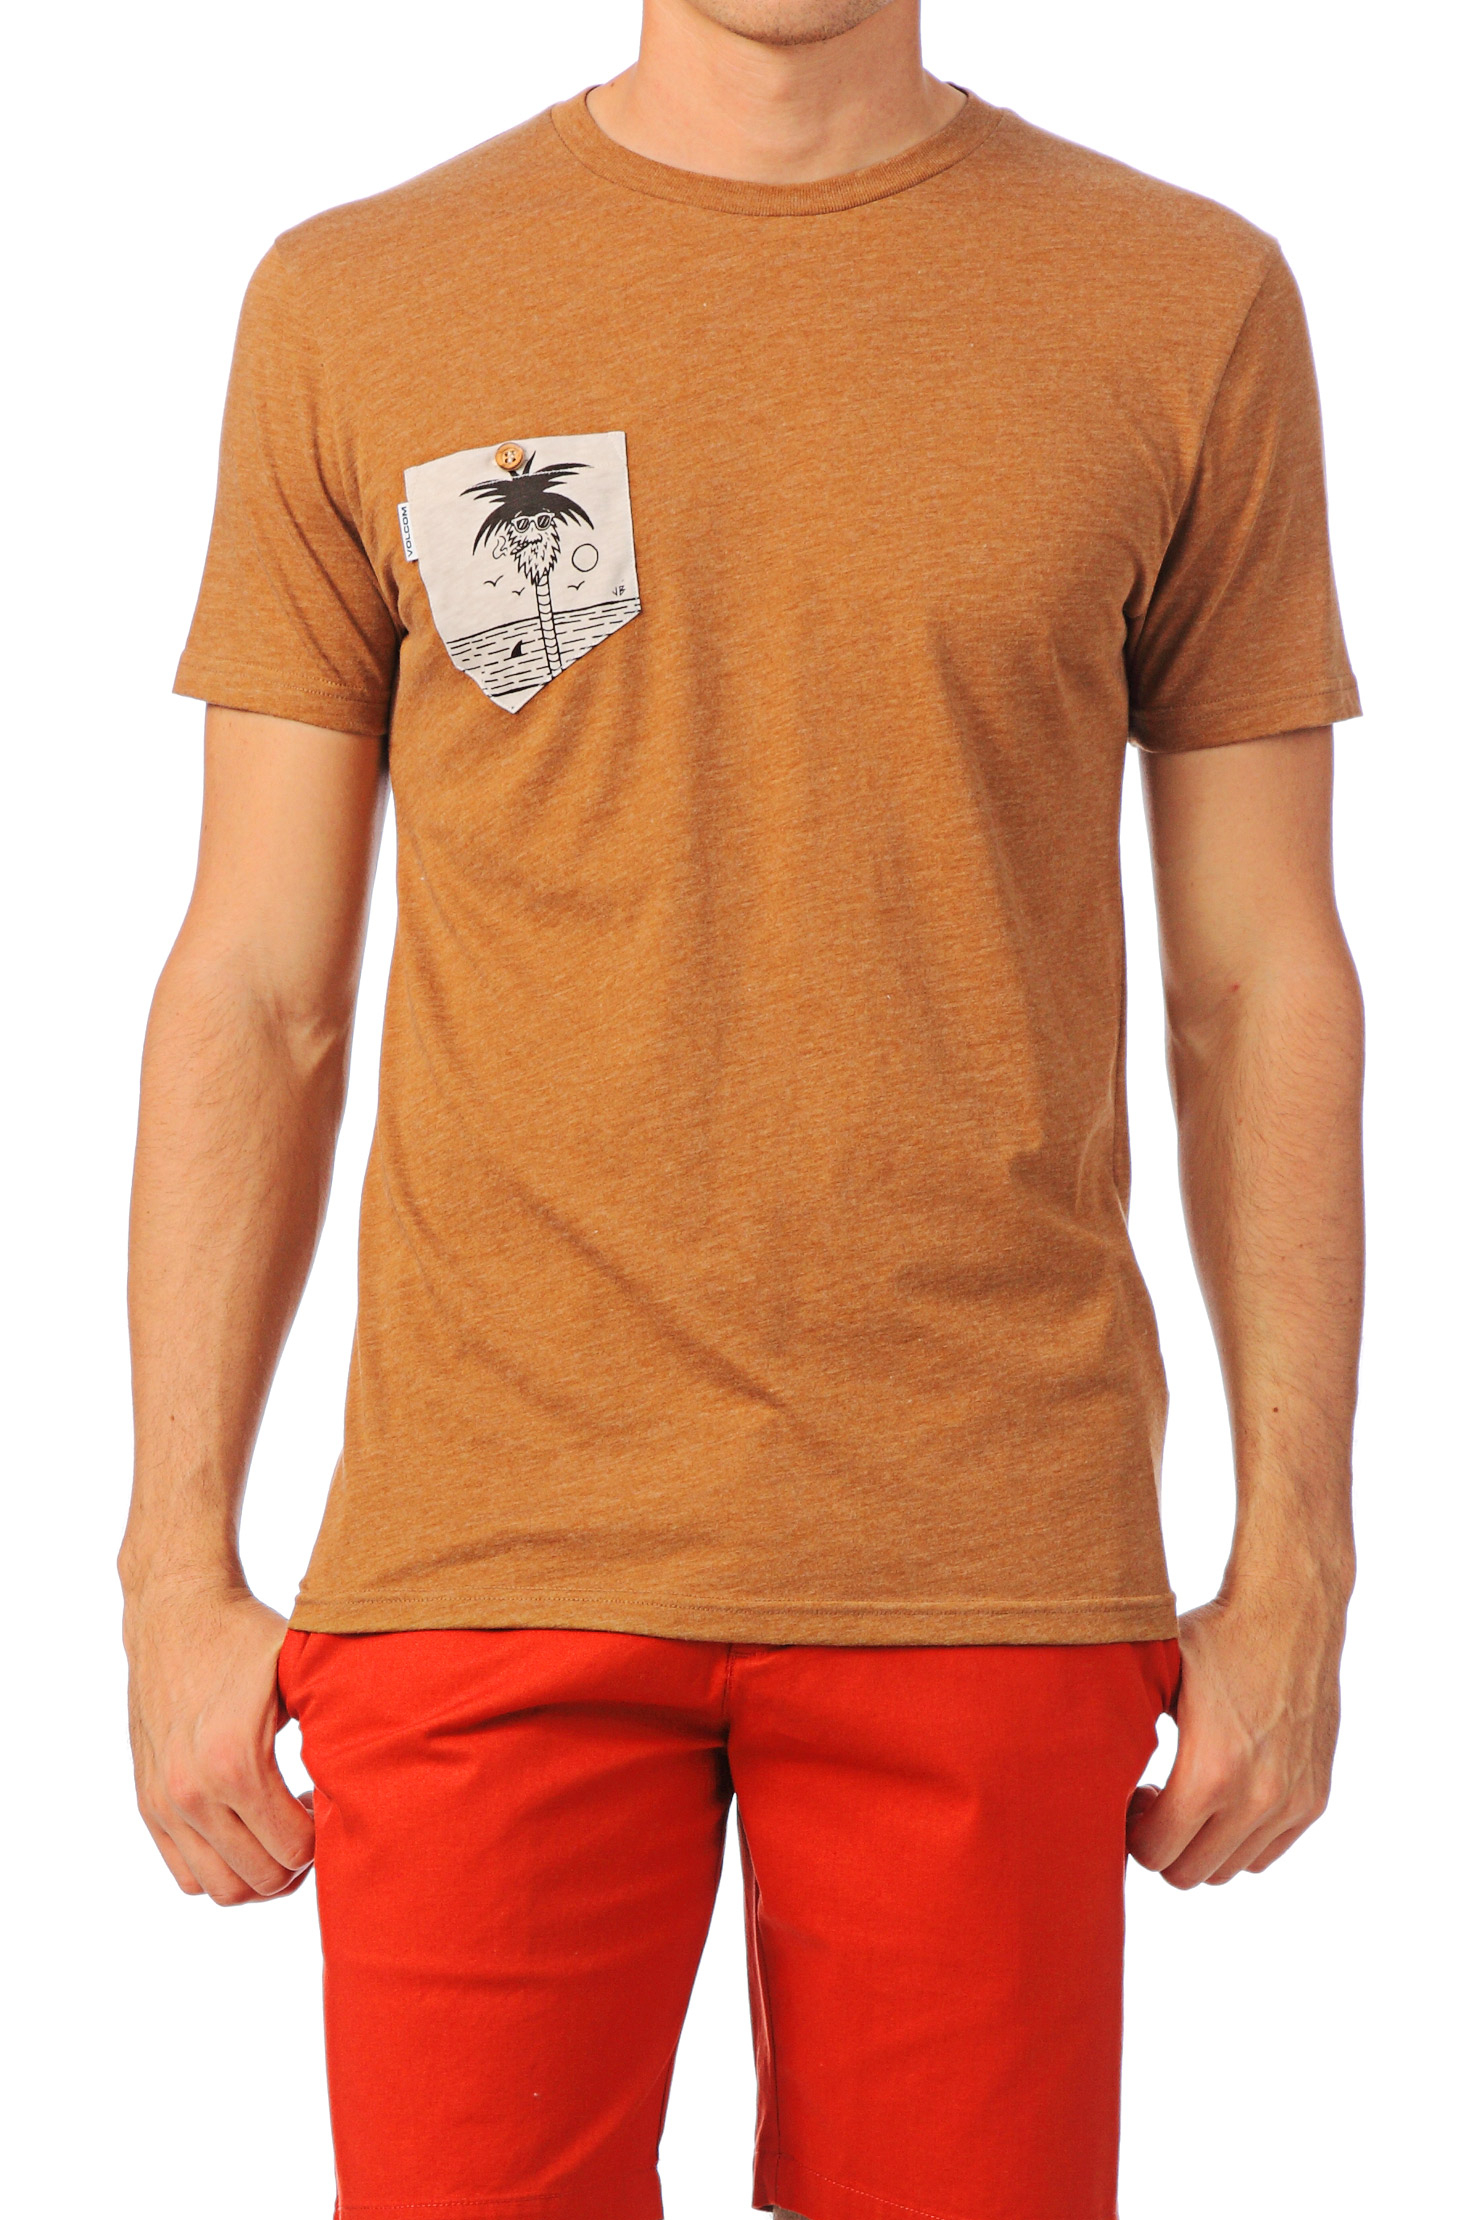 Volcom Short Sleeve Tshirt Printed Pocket Ss In Brown For